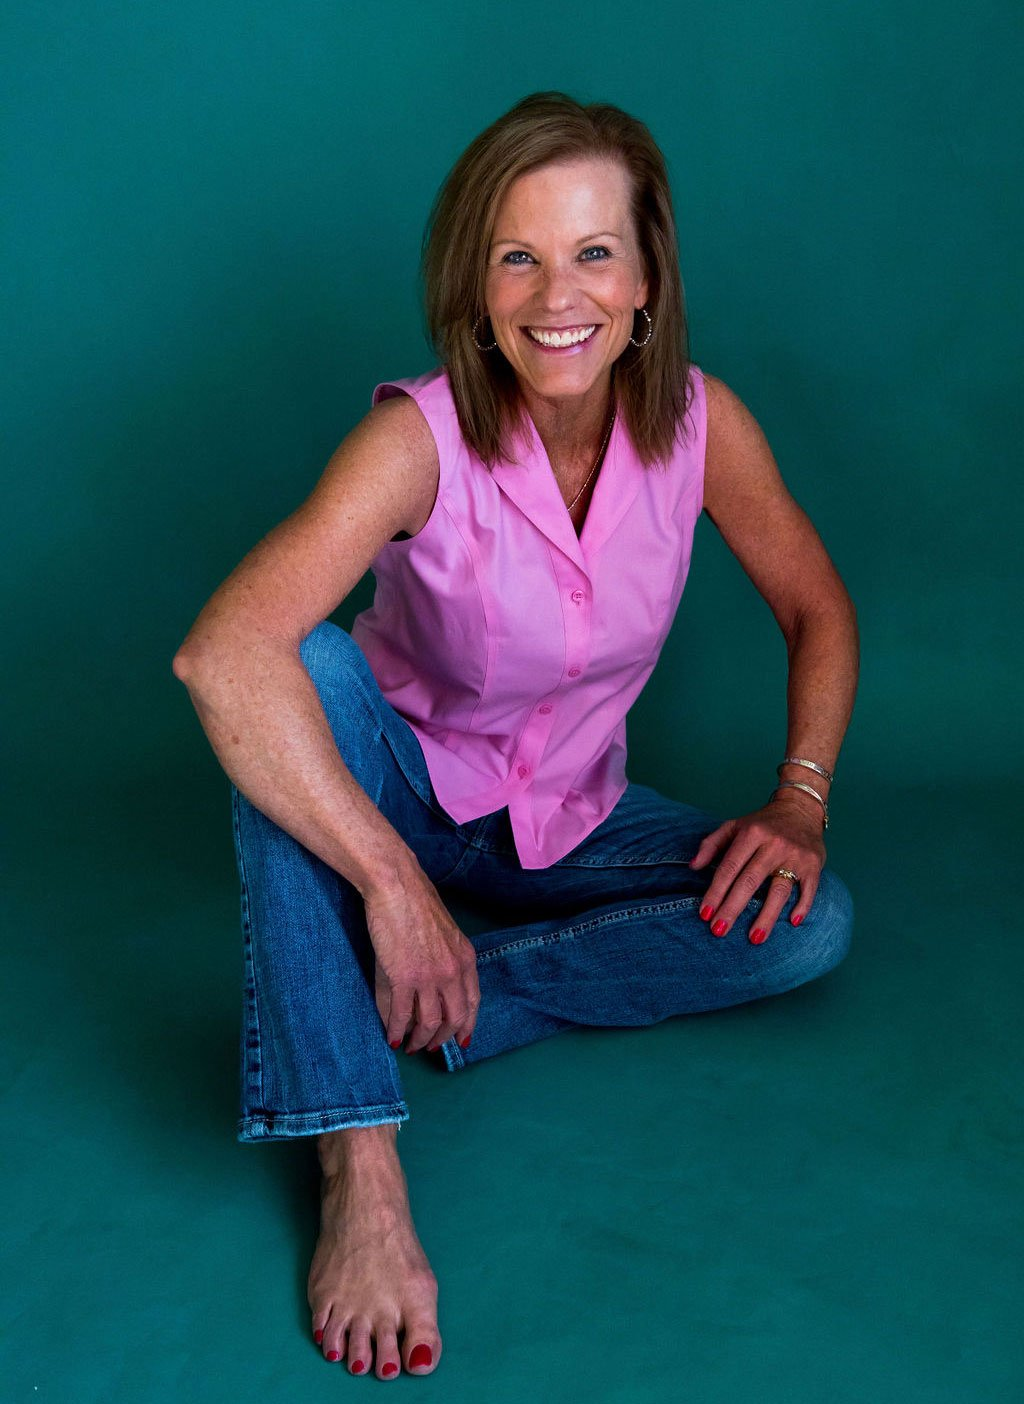 Personal Trainer and Lifestyle Coach - Robin McIntire